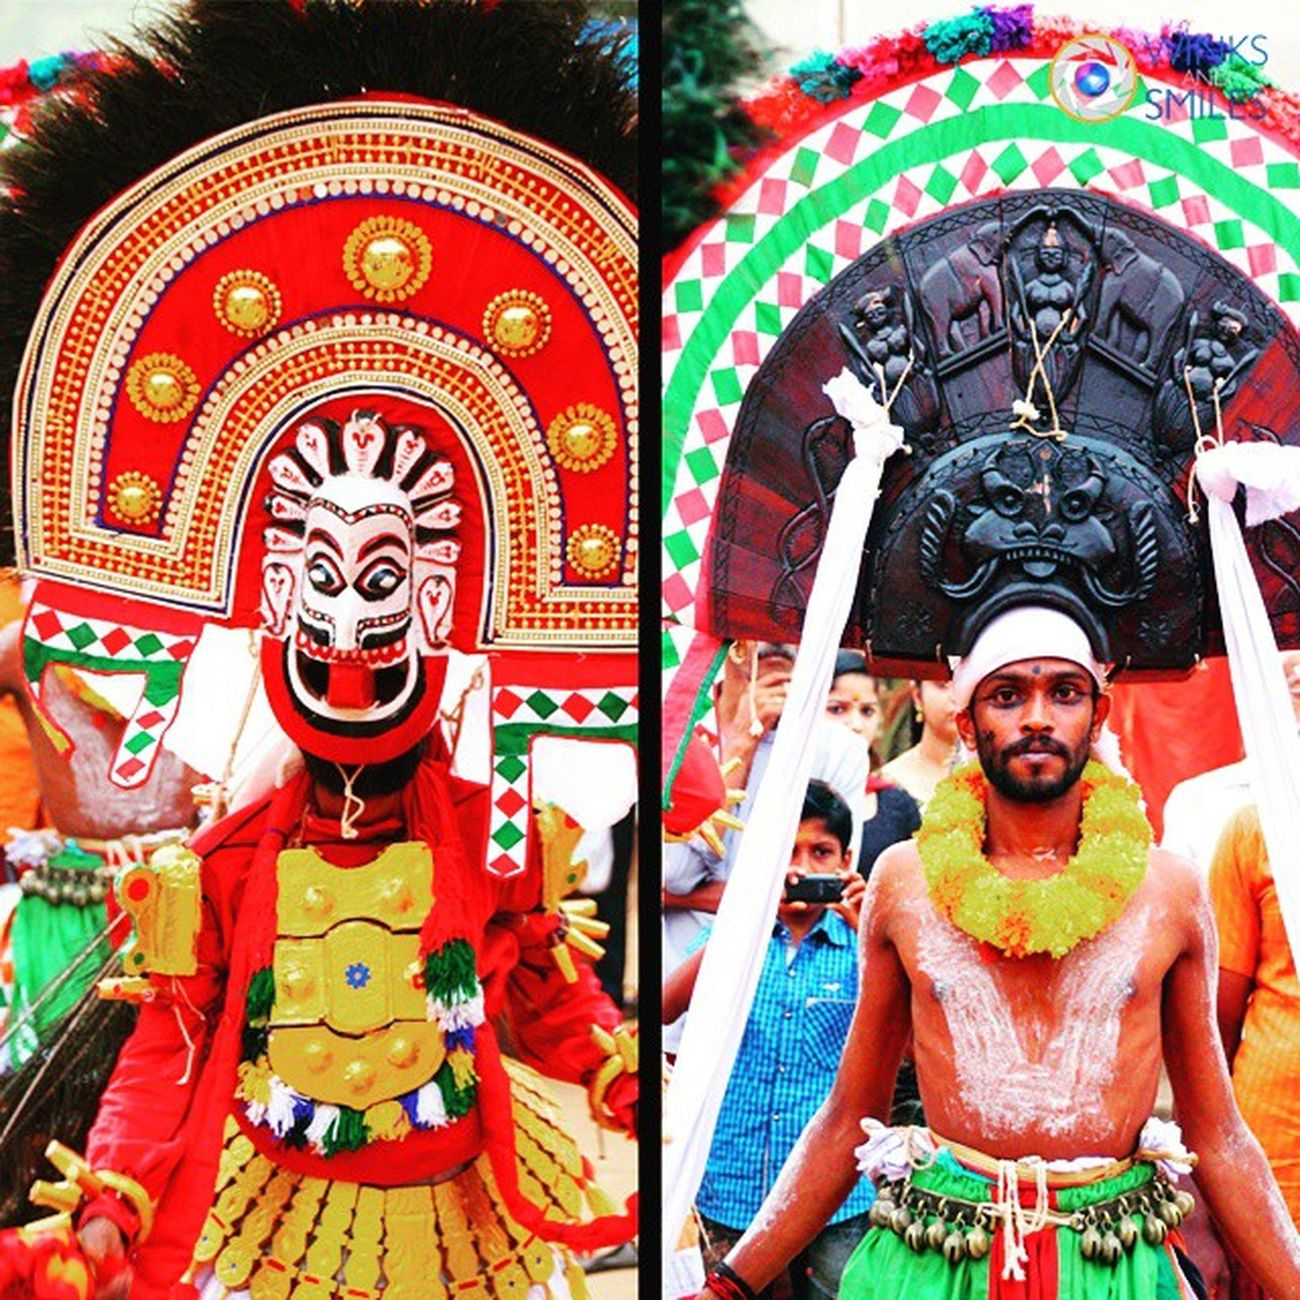 Poothan and Thira - Poothan and Thira is a ritualistic art form in the South Malabar region of Kerala in India, in which people dance in costumes representing Poothan, Lord Shiva's lieutenant, and Thira, the Goddess Kali, to the accompaniment of drummers. It is usually performed once or twice a year in villages or towns to cleanse them of evil spirits as well as in temples - especially in the Pooram festival season between December and May. Kerala Poothan Thira Pooram Festival Temples Thrissurpooram India Incredibleindia GodsOwnCountry Ottapalam Bhagavathitemple